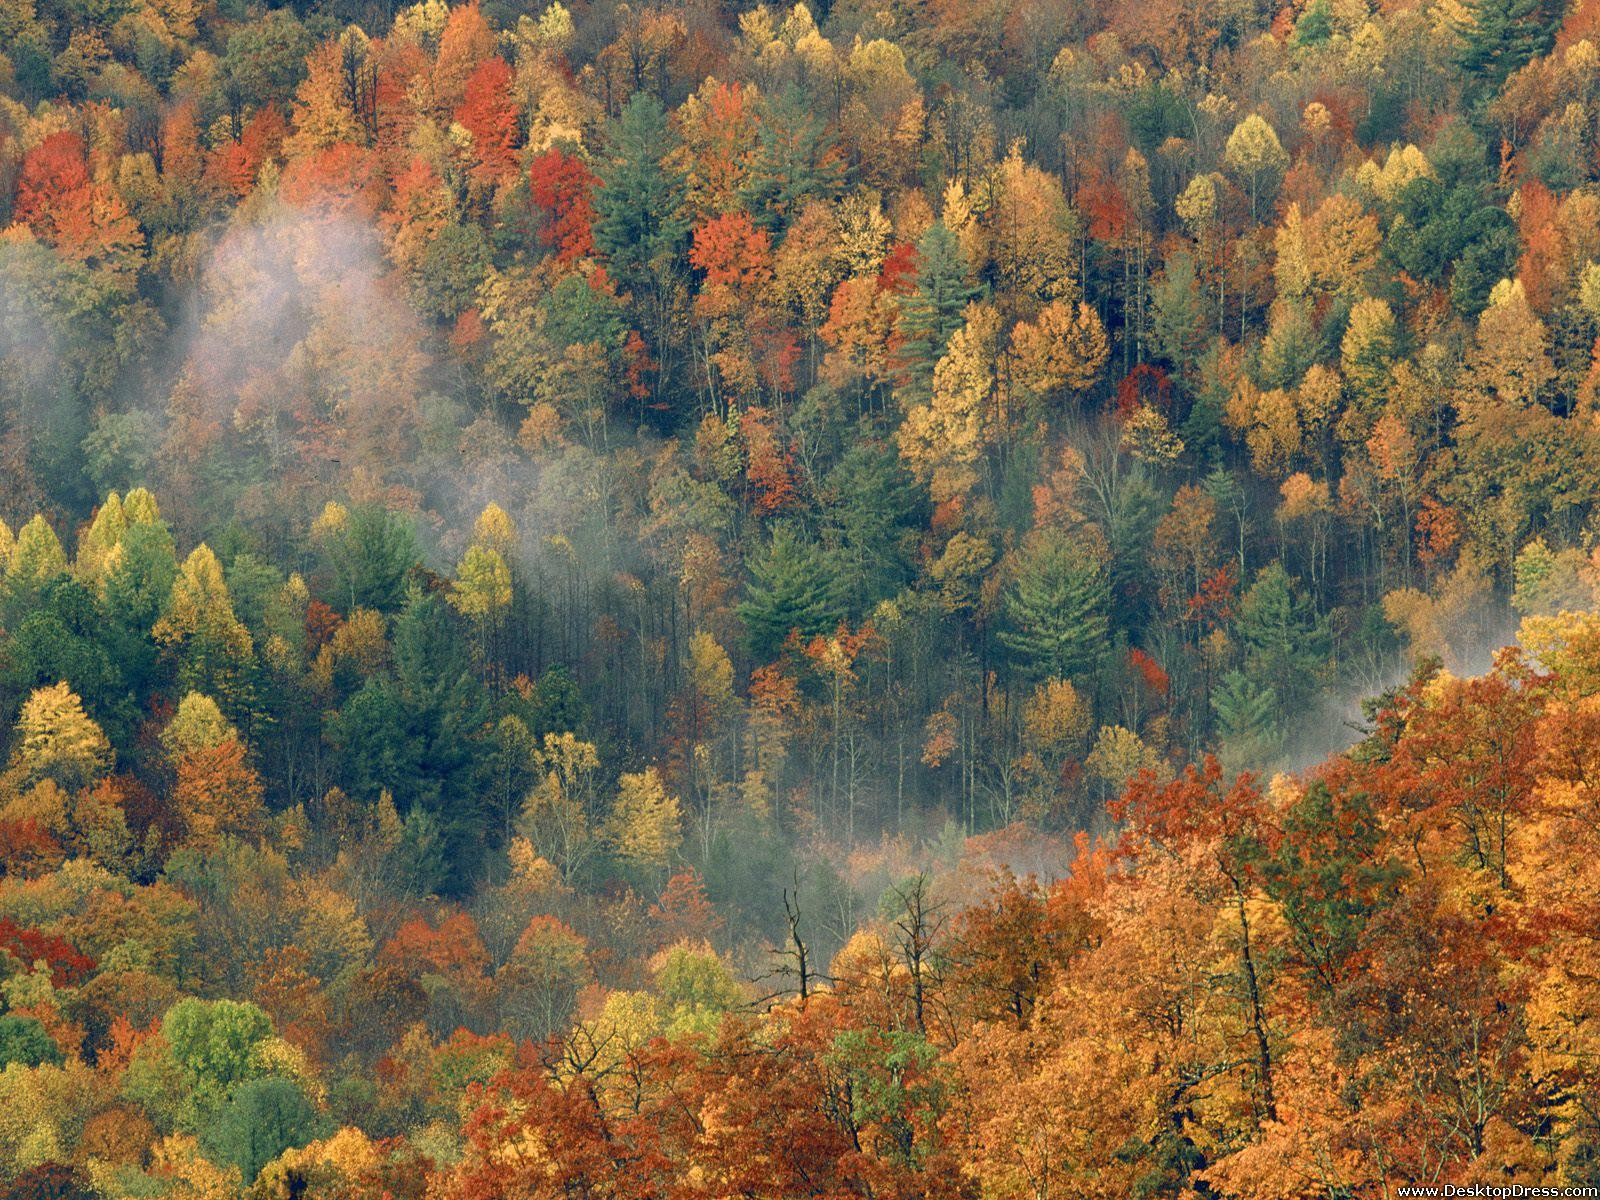 Desktop Wallpapers » Natural Backgrounds » Colorful Autumn Forest